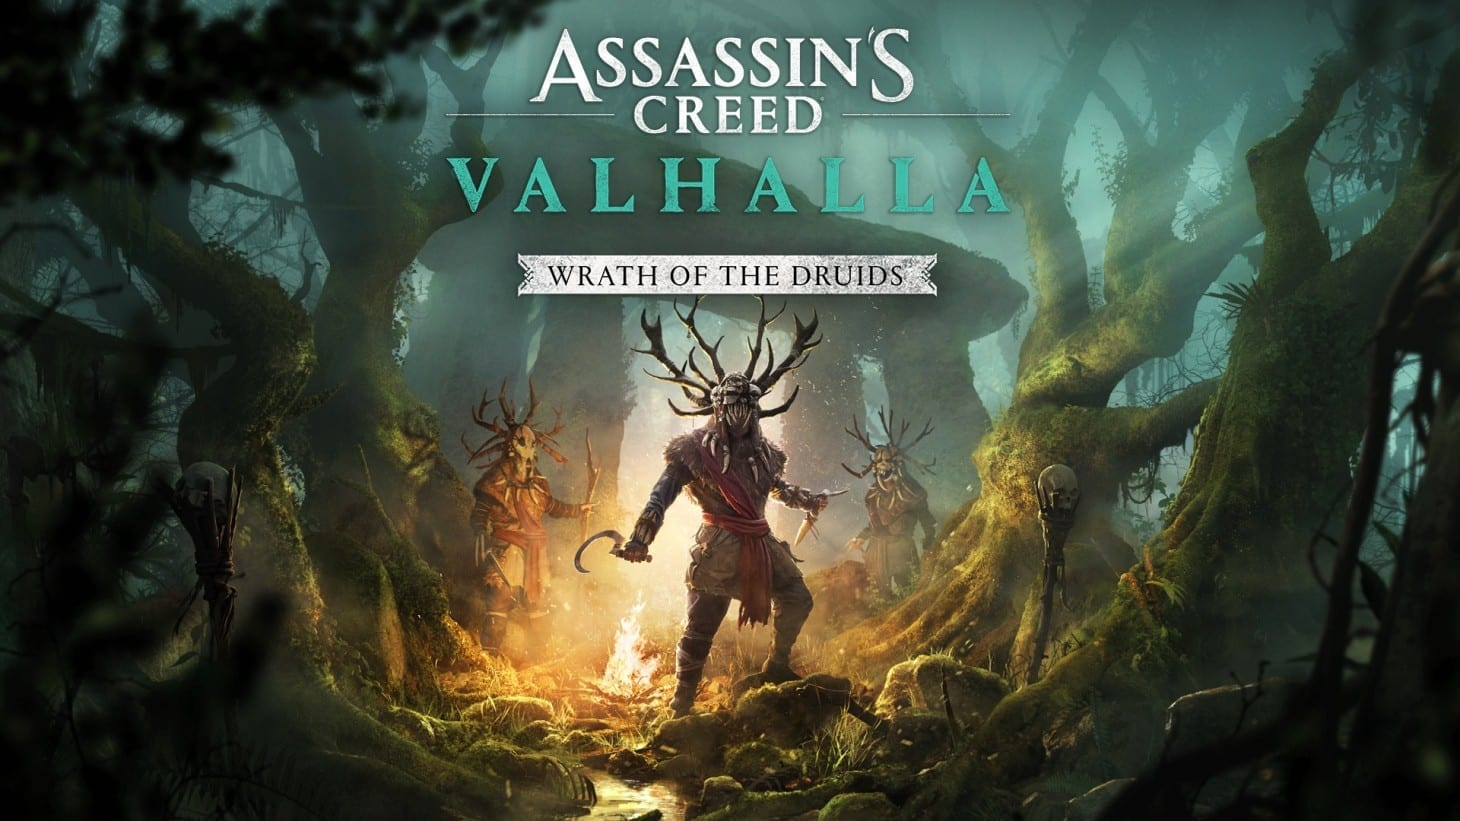 Review – Assassin's Creed: Valhalla 'Wrath Of The Druids' DLC